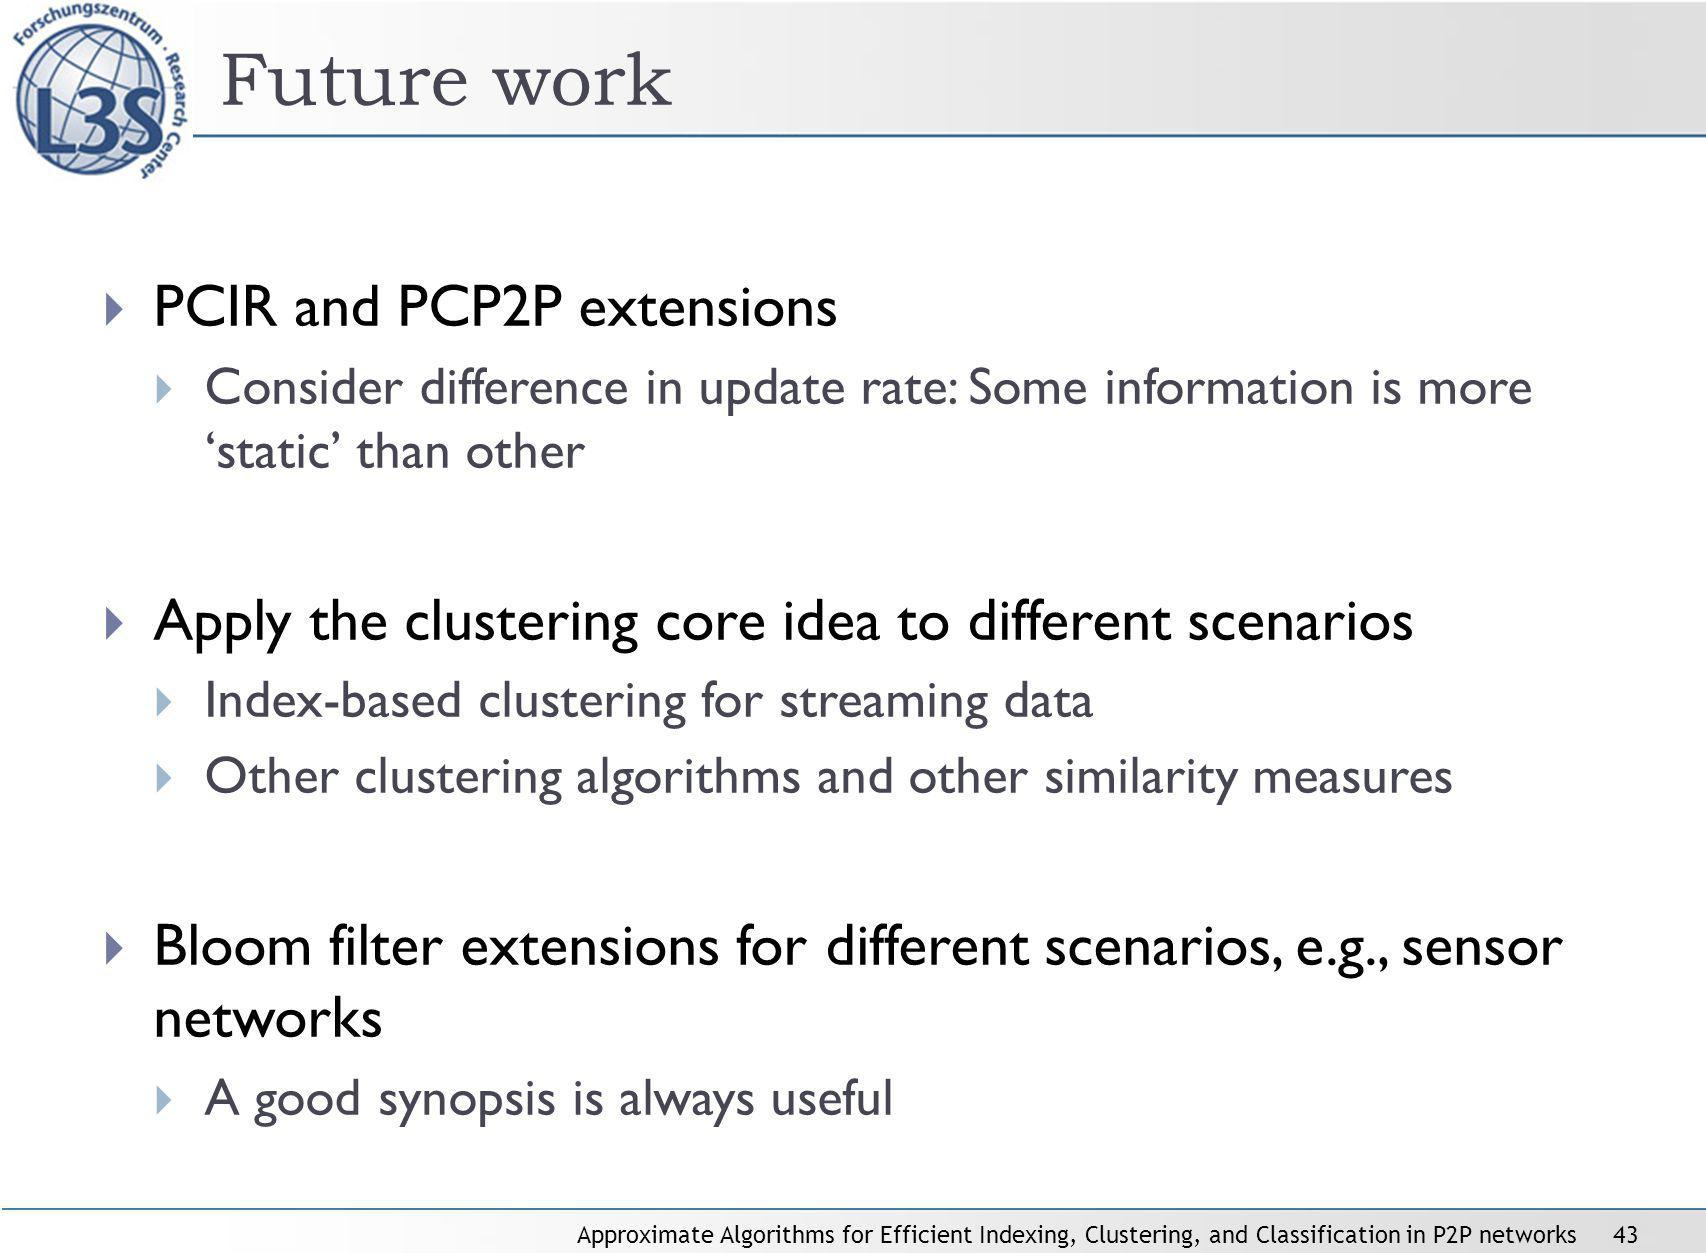 Approximate Algorithms for Efficient Indexing, Clustering, and Classification in P2P networks43 Future work PCIR and PCP2P extensions Consider differe